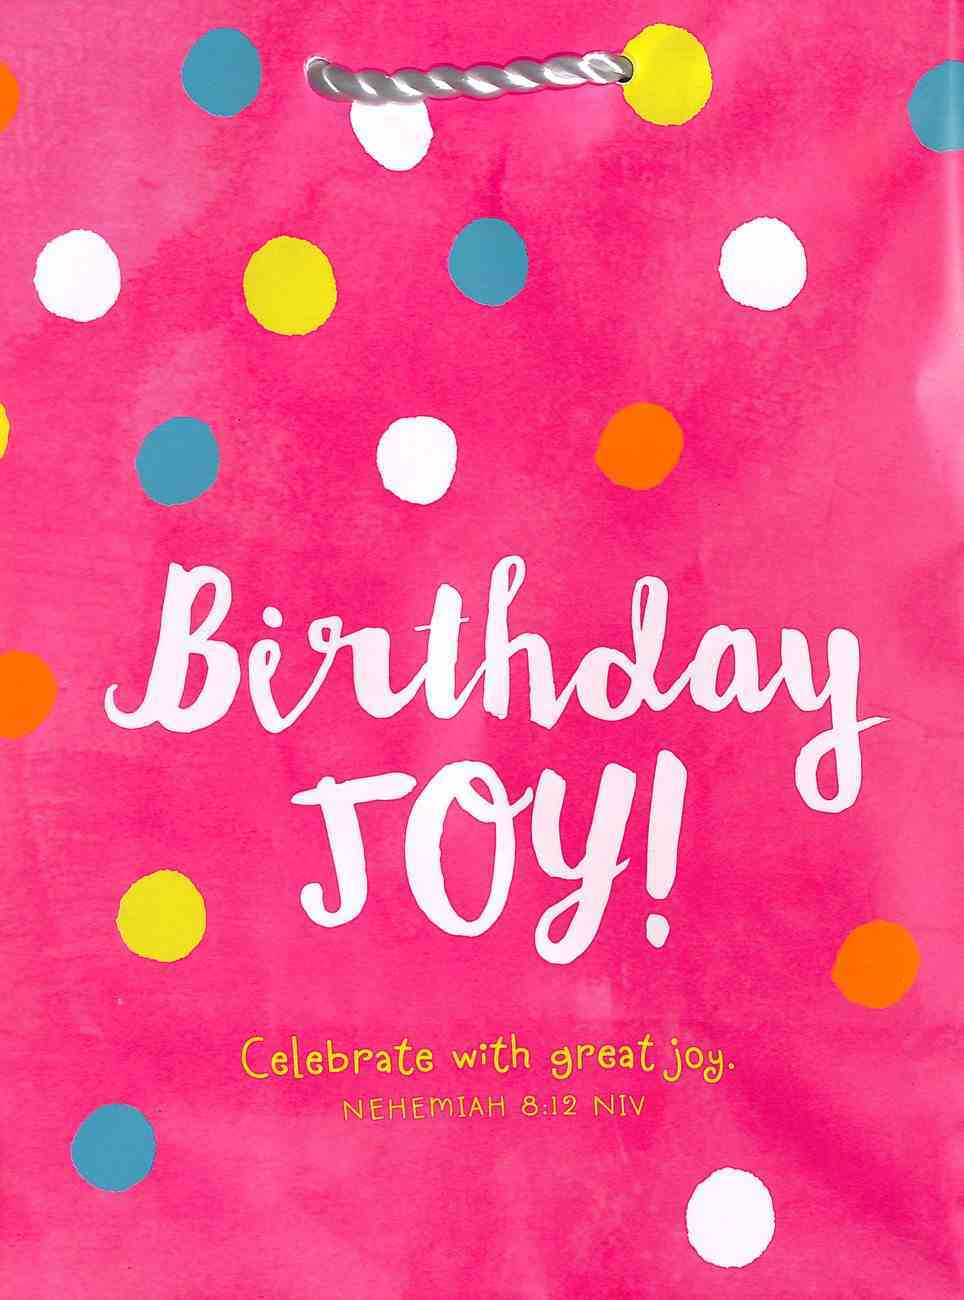 Value Gift Bag Medium: Pink Polka Dot, Birthday Joy! (Nehemiah 8:12 Niv) Stationery